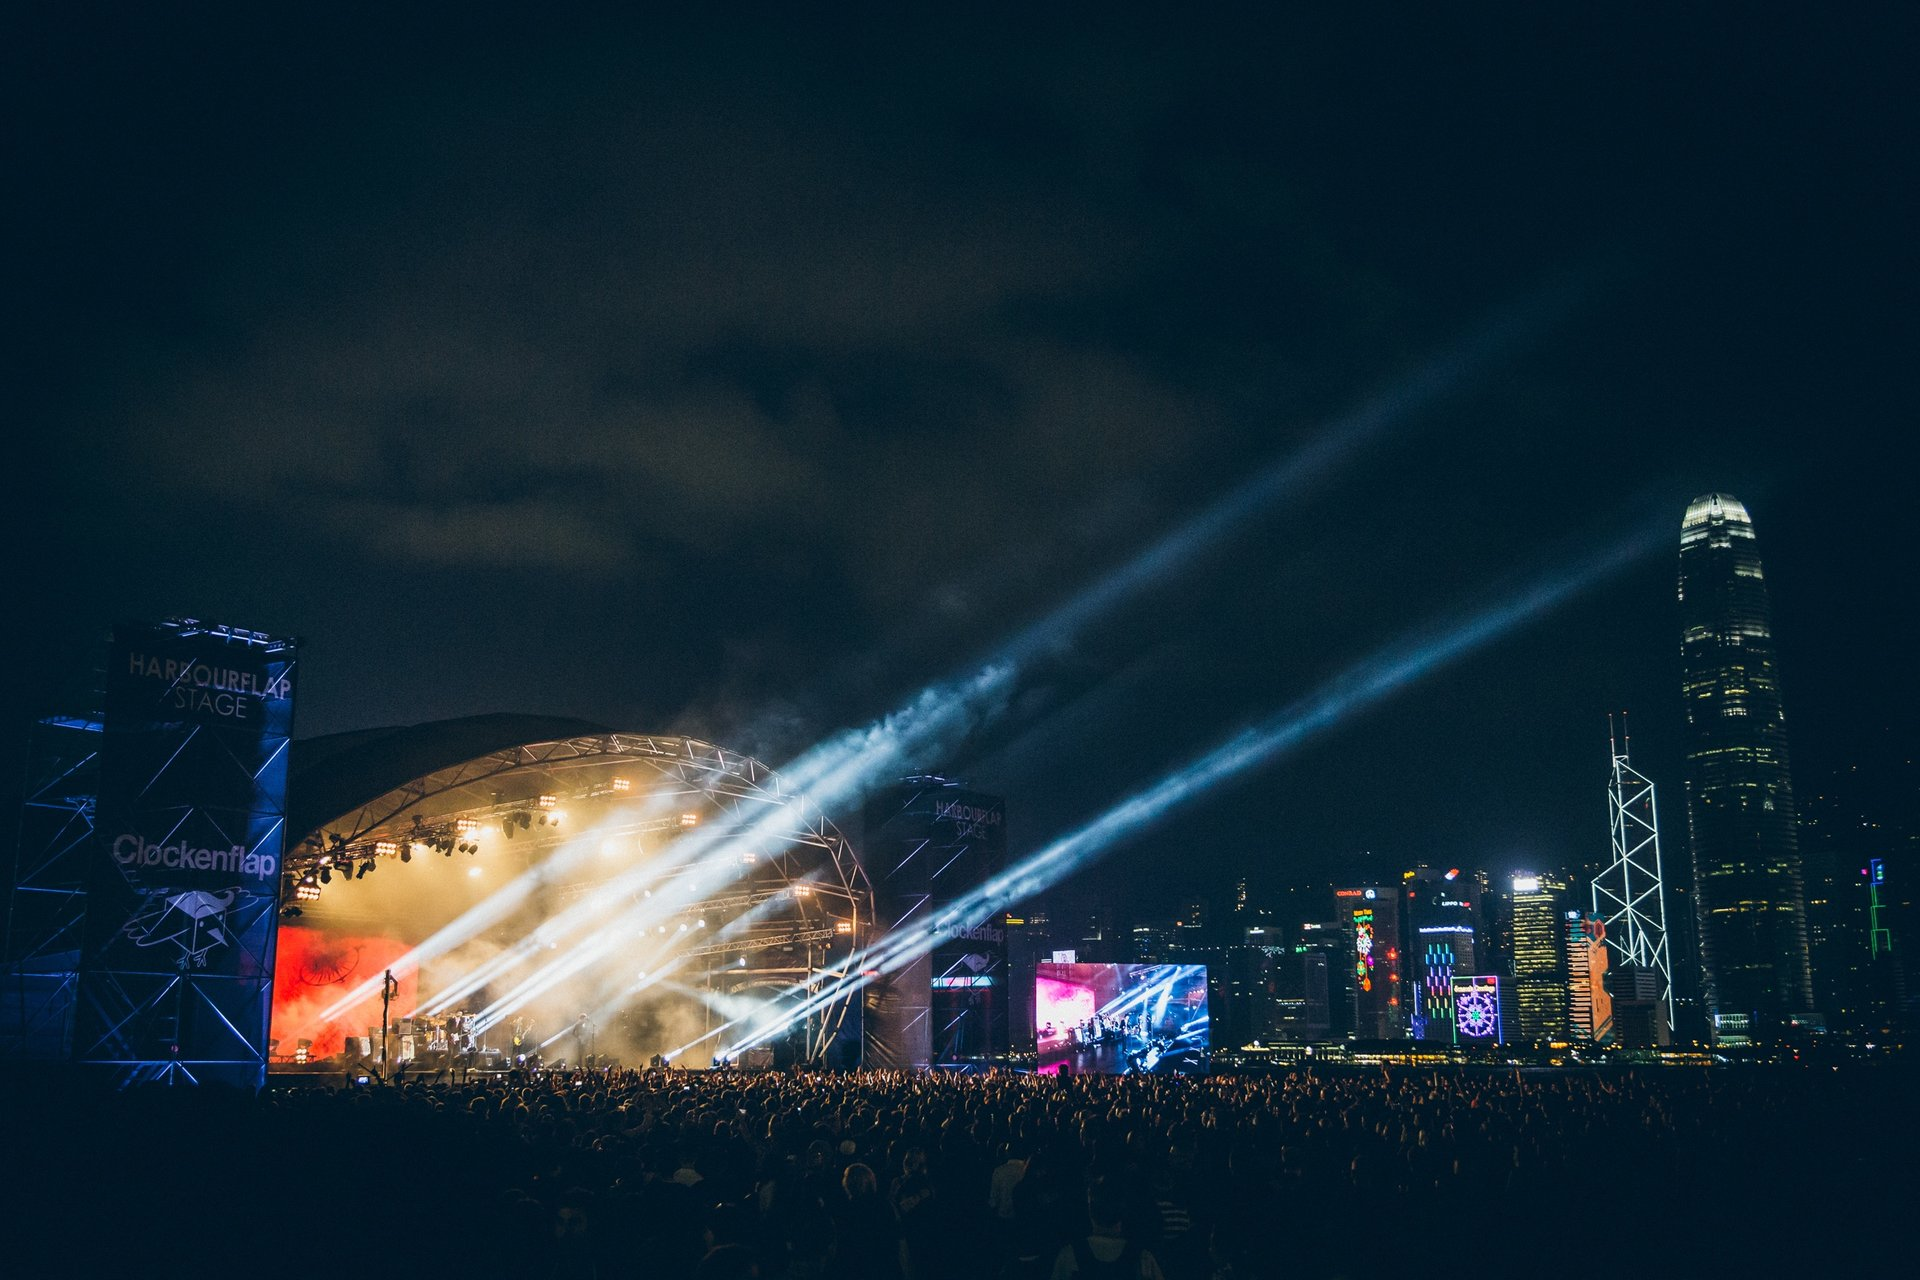 Clockenflap in Hong Kong - Best Season 2020